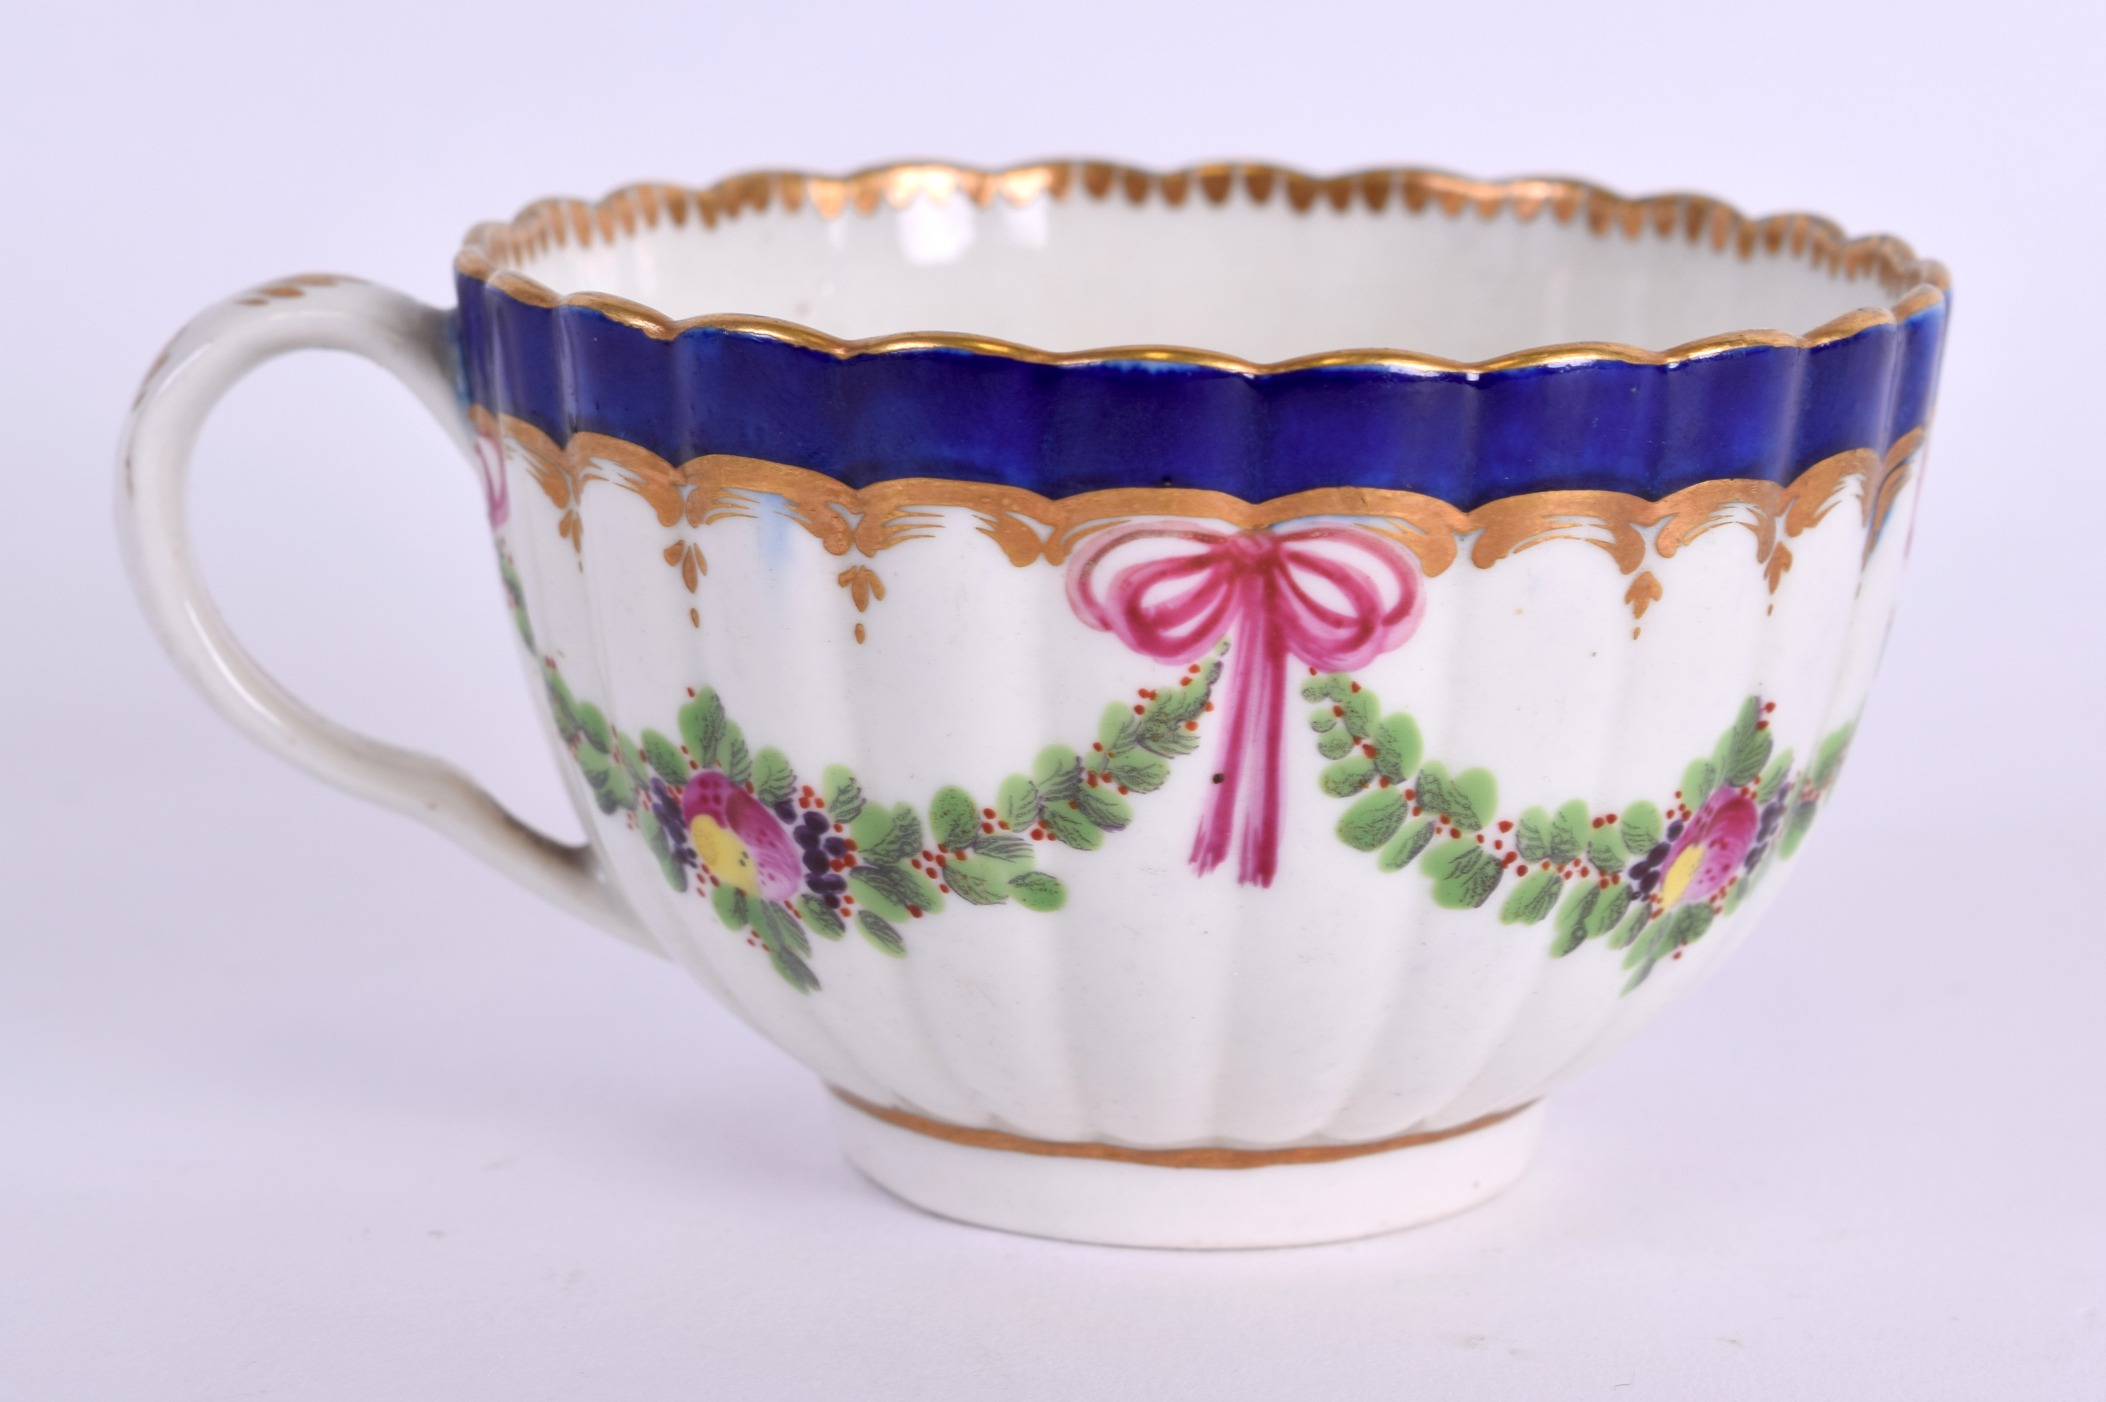 Lot 98 - AN 18TH CENTURY WORCESTER DALHOUSIE RIBBED CUP with unusual internally painted puce urn. 8.5 cm